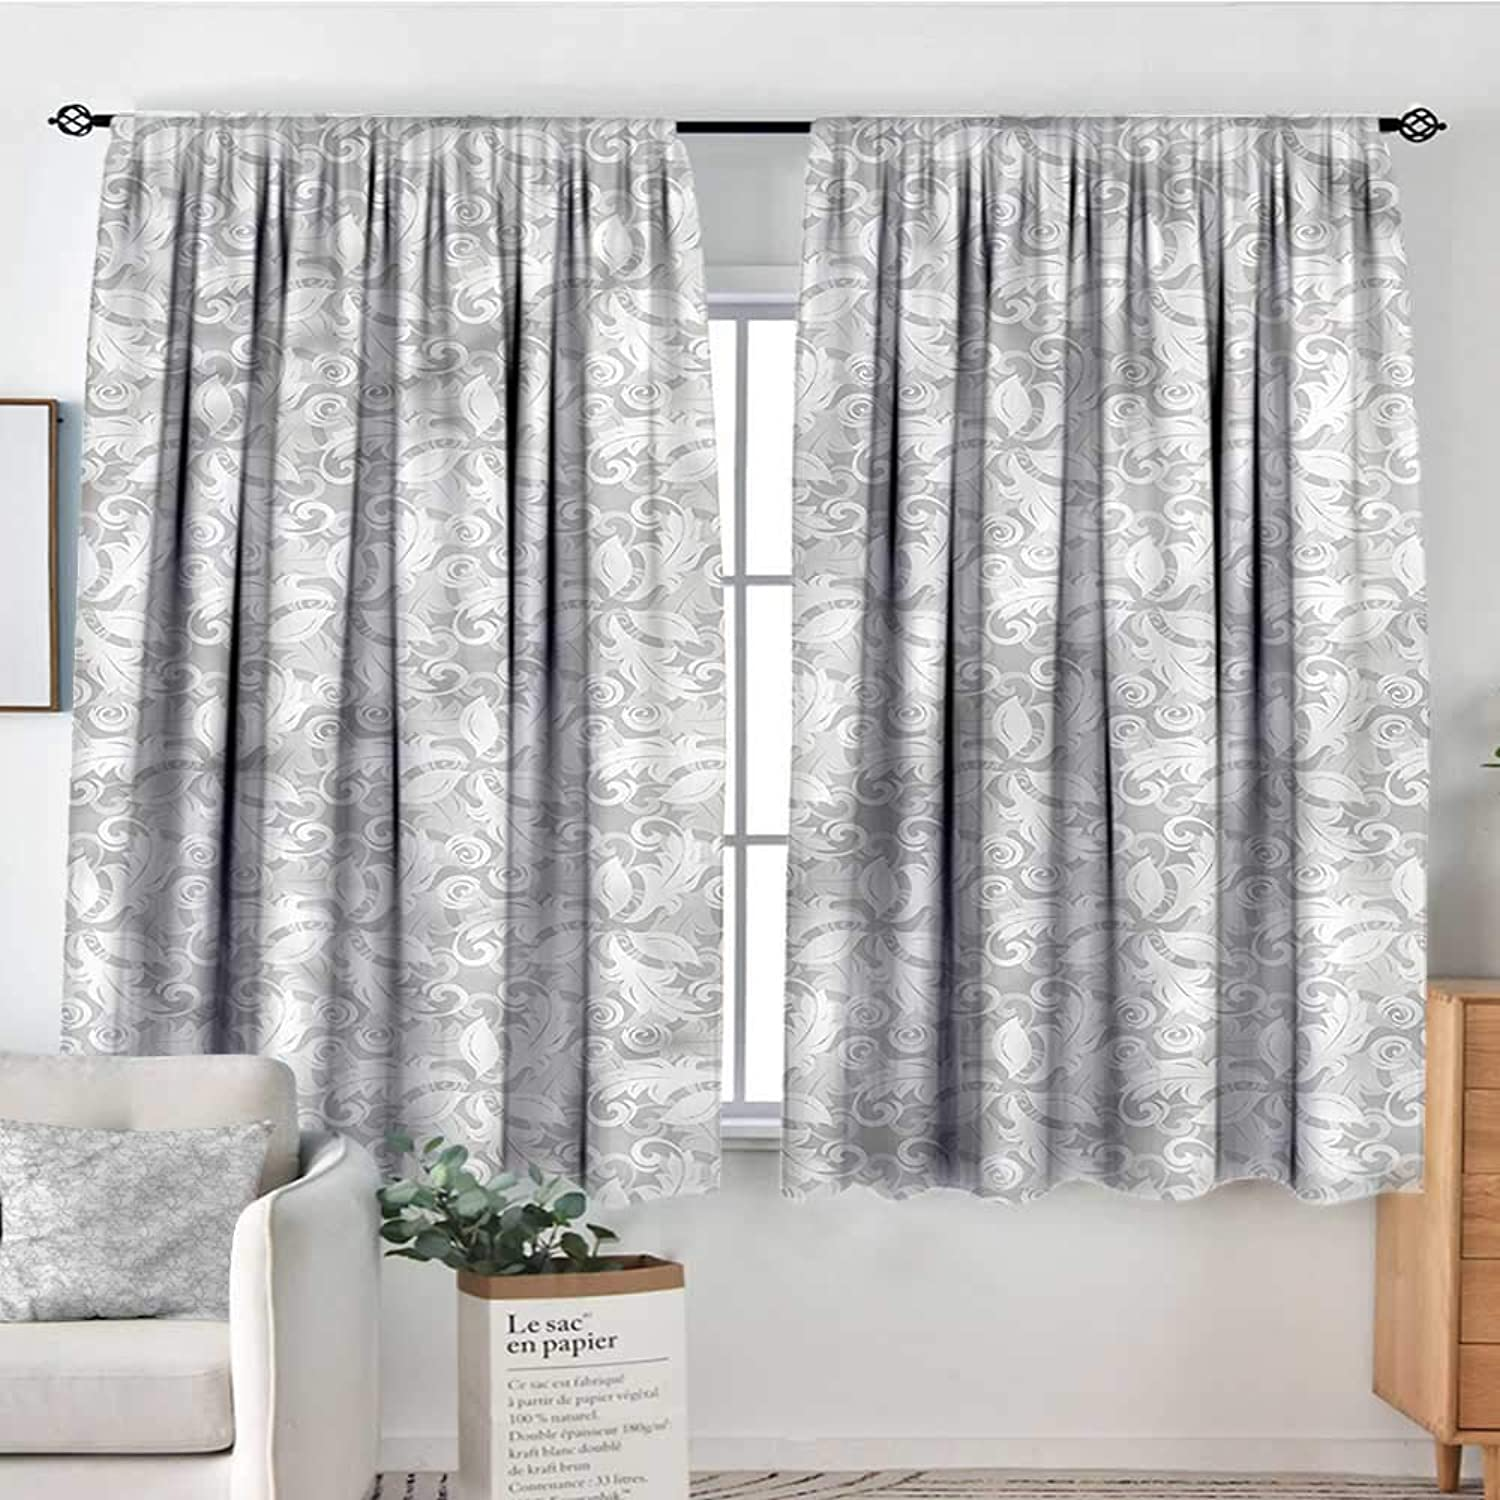 Grey,Rod Curtains Swirled Blossom Leaves 42 X63  Backout Curtains for Kids Iving Room